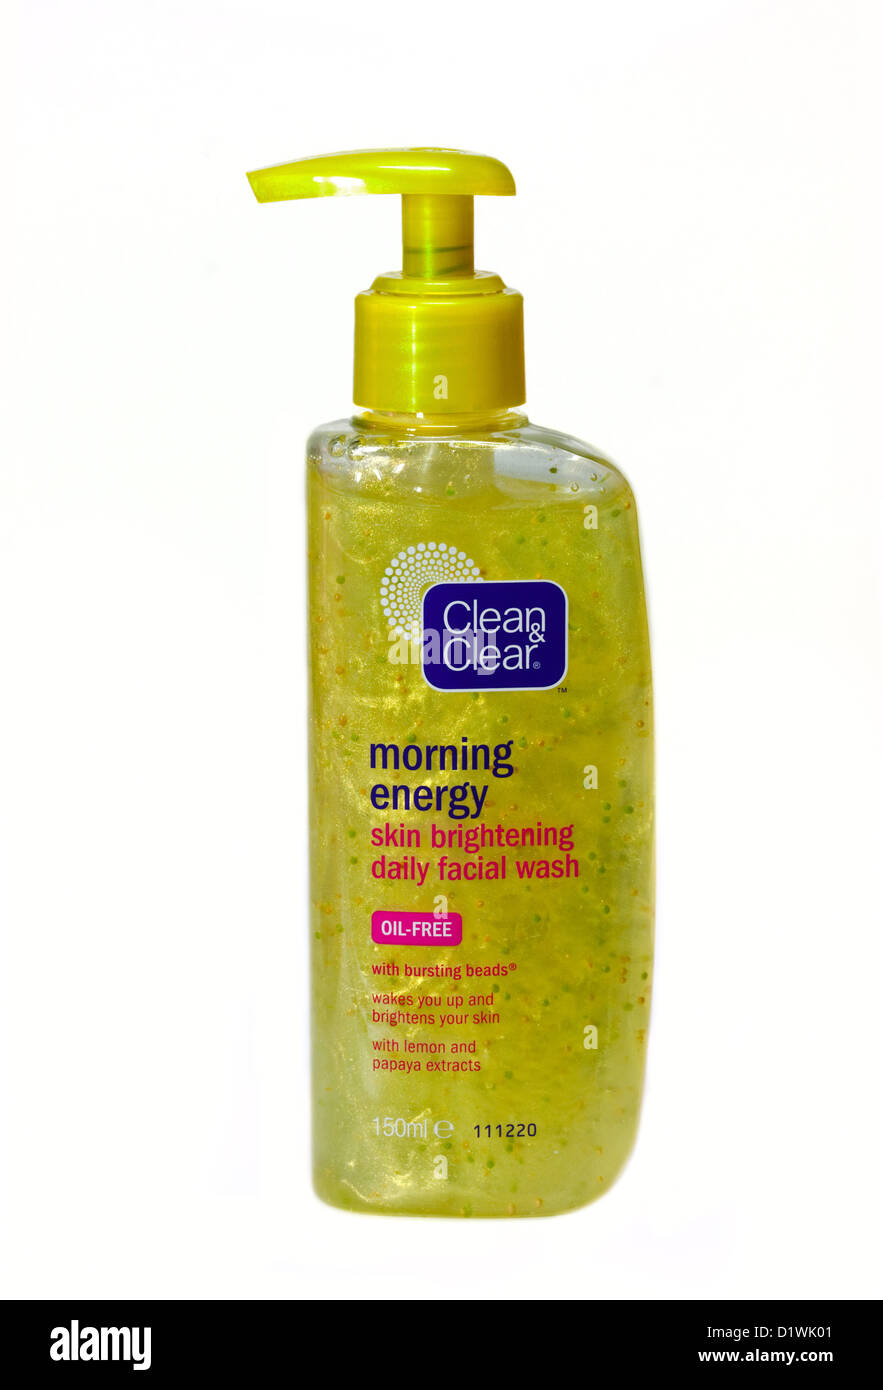 Clean and Clear Morning Energy Face Wash with Beads Stock Photo